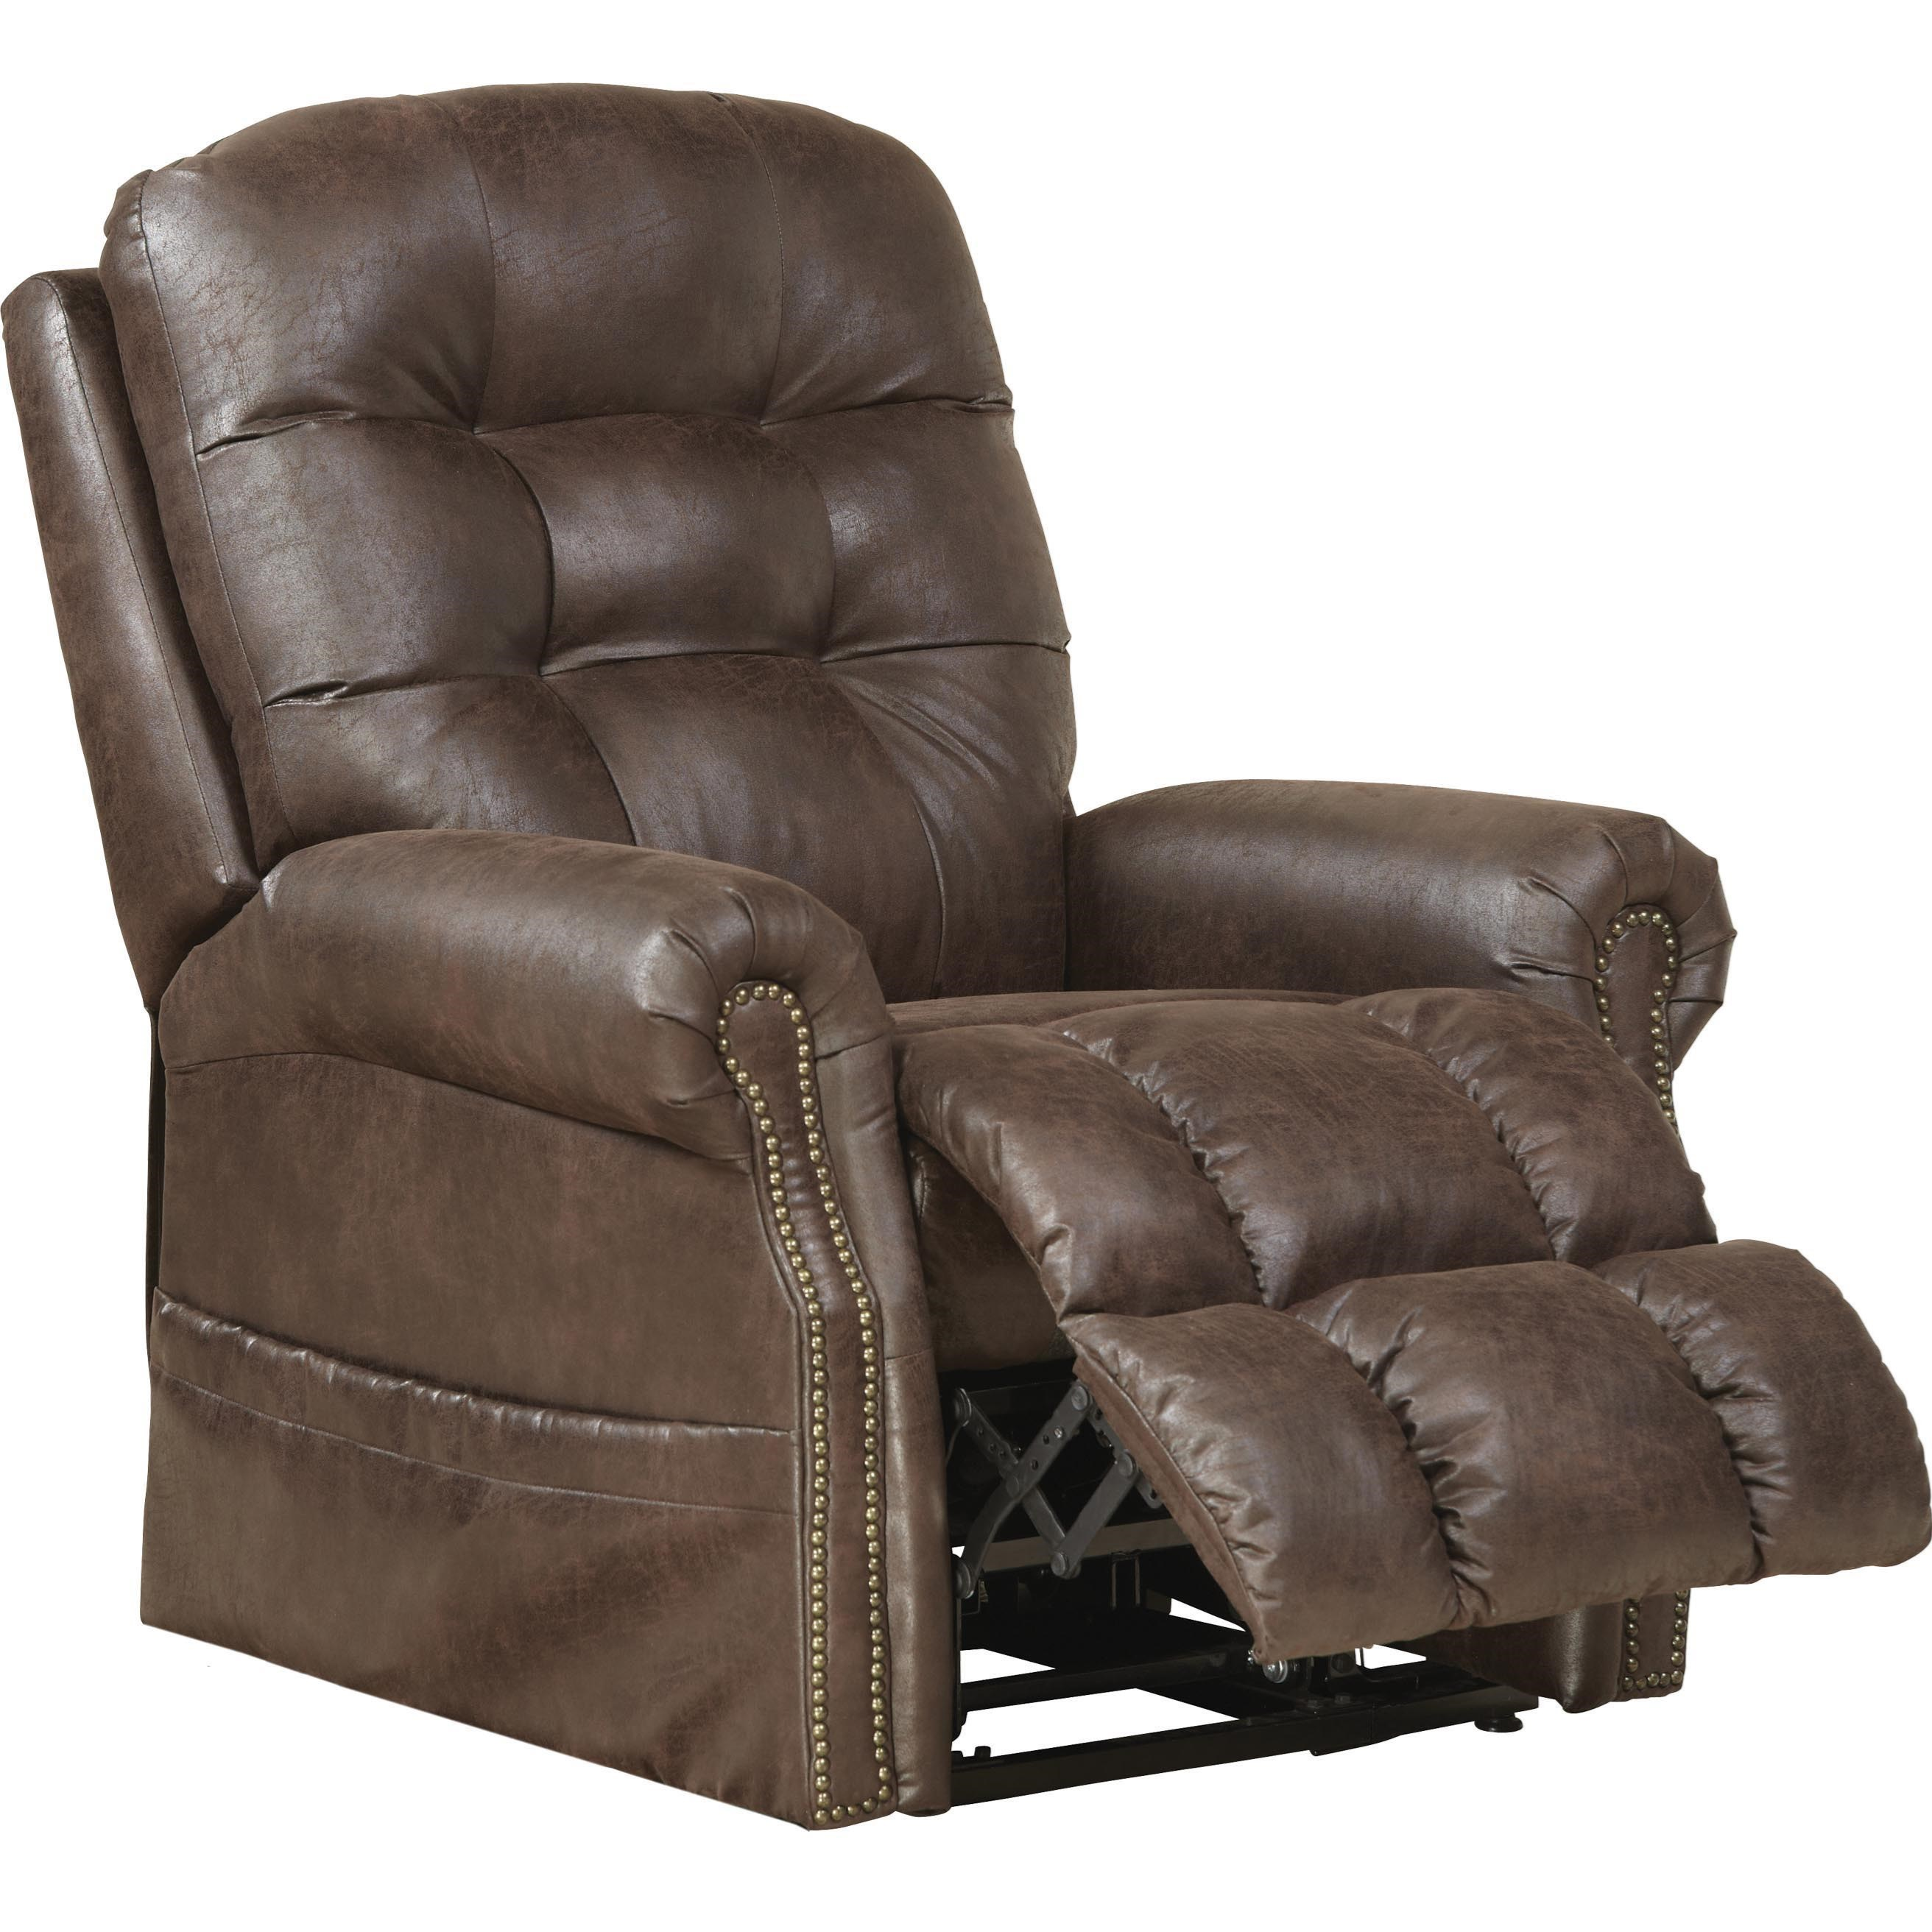 chairs for tall man recliner chair covers in australia big power with heat and massage